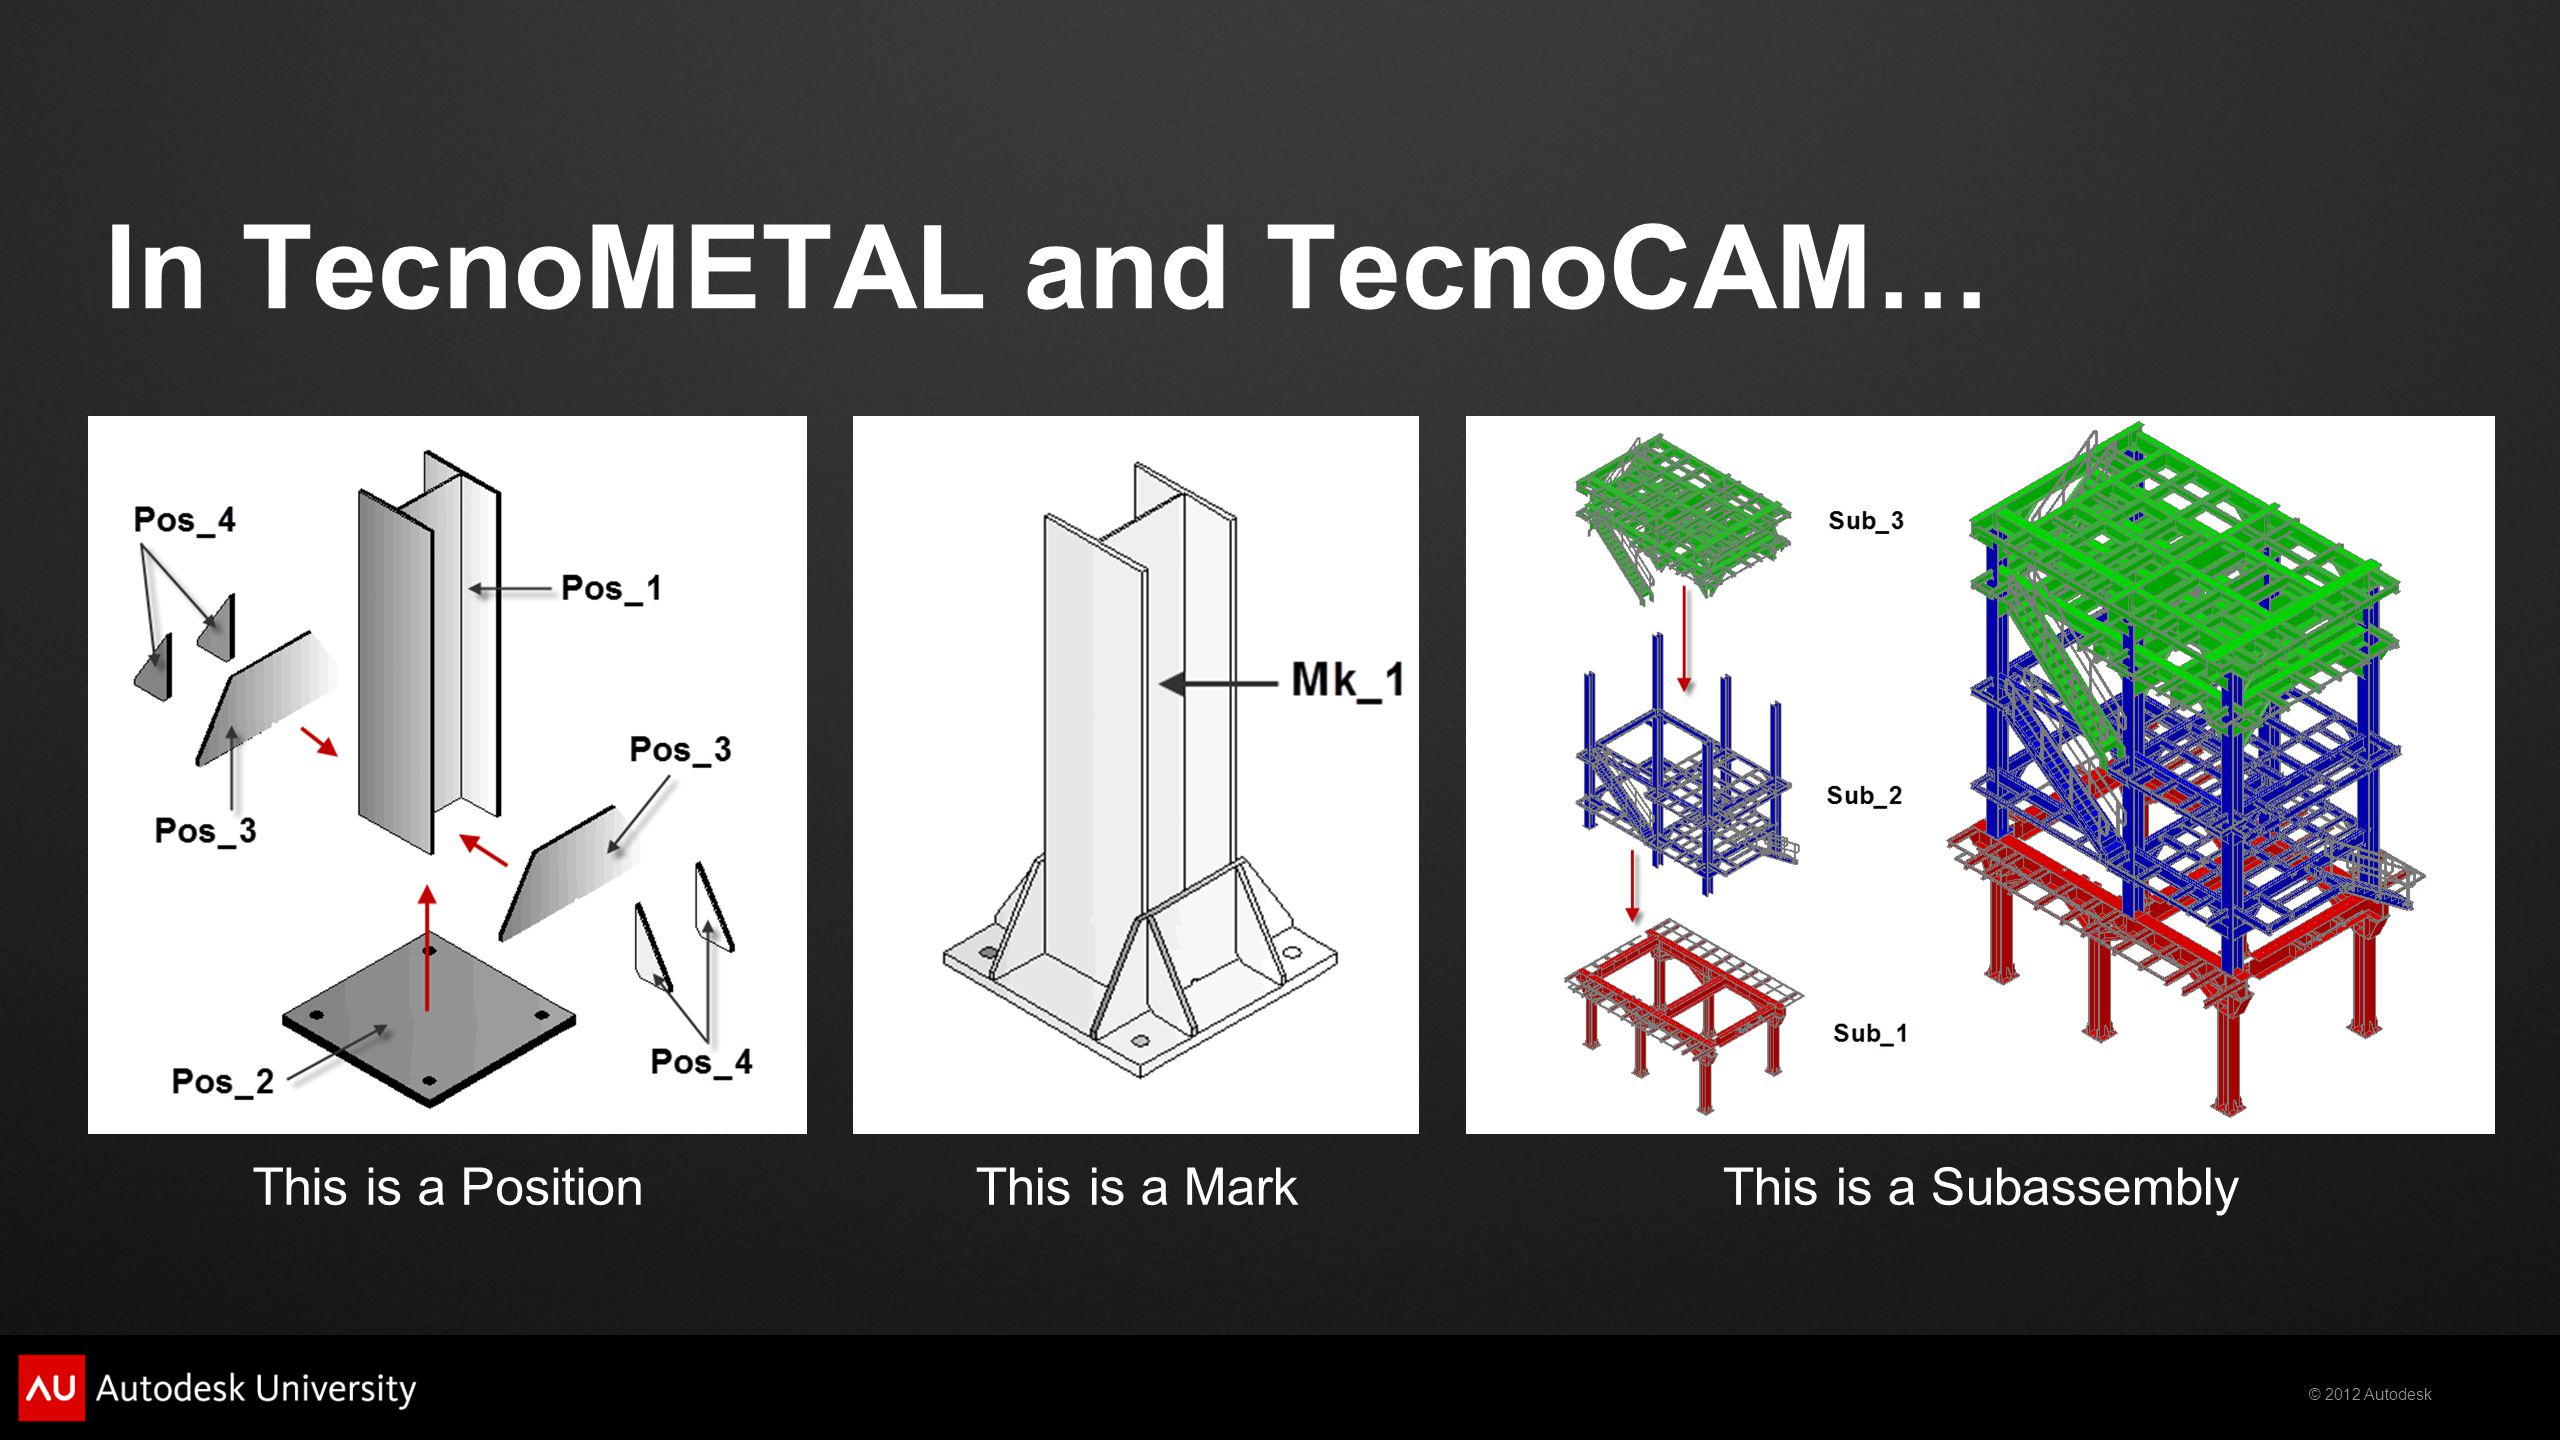 © 2012 Autodesk In TecnoMETAL and TecnoCAM… This is a PositionThis is a MarkThis is a Subassembly